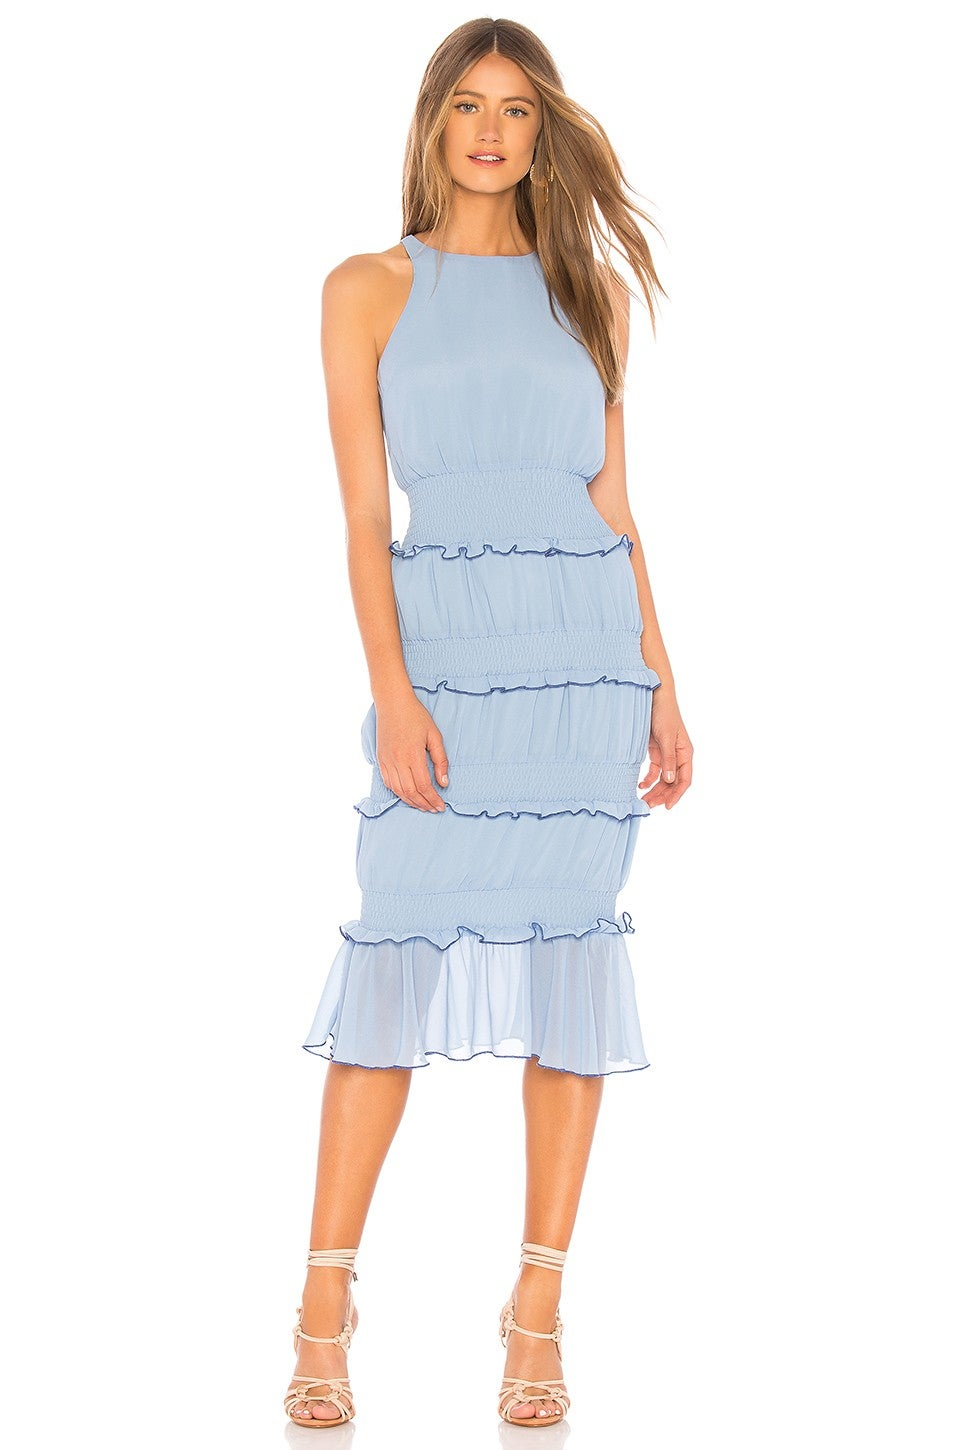 Lovers + Friends tiered ruffled blue dress